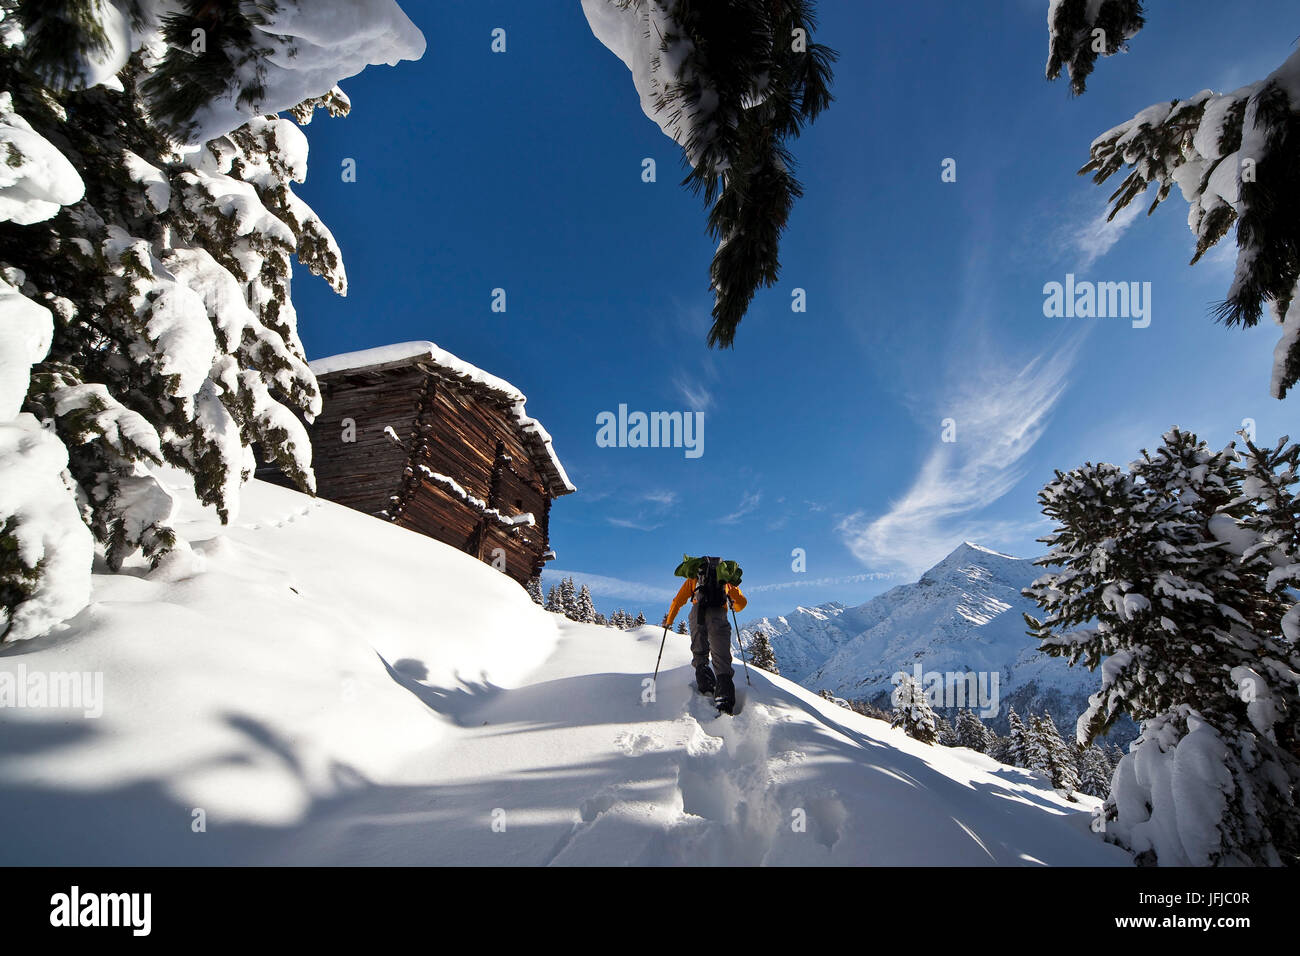 Hiker blessed with snowshoes advancing in fresh snow in Baite Ables, Valfurva, Valtellina, Lombardy, Italy, - Stock Image